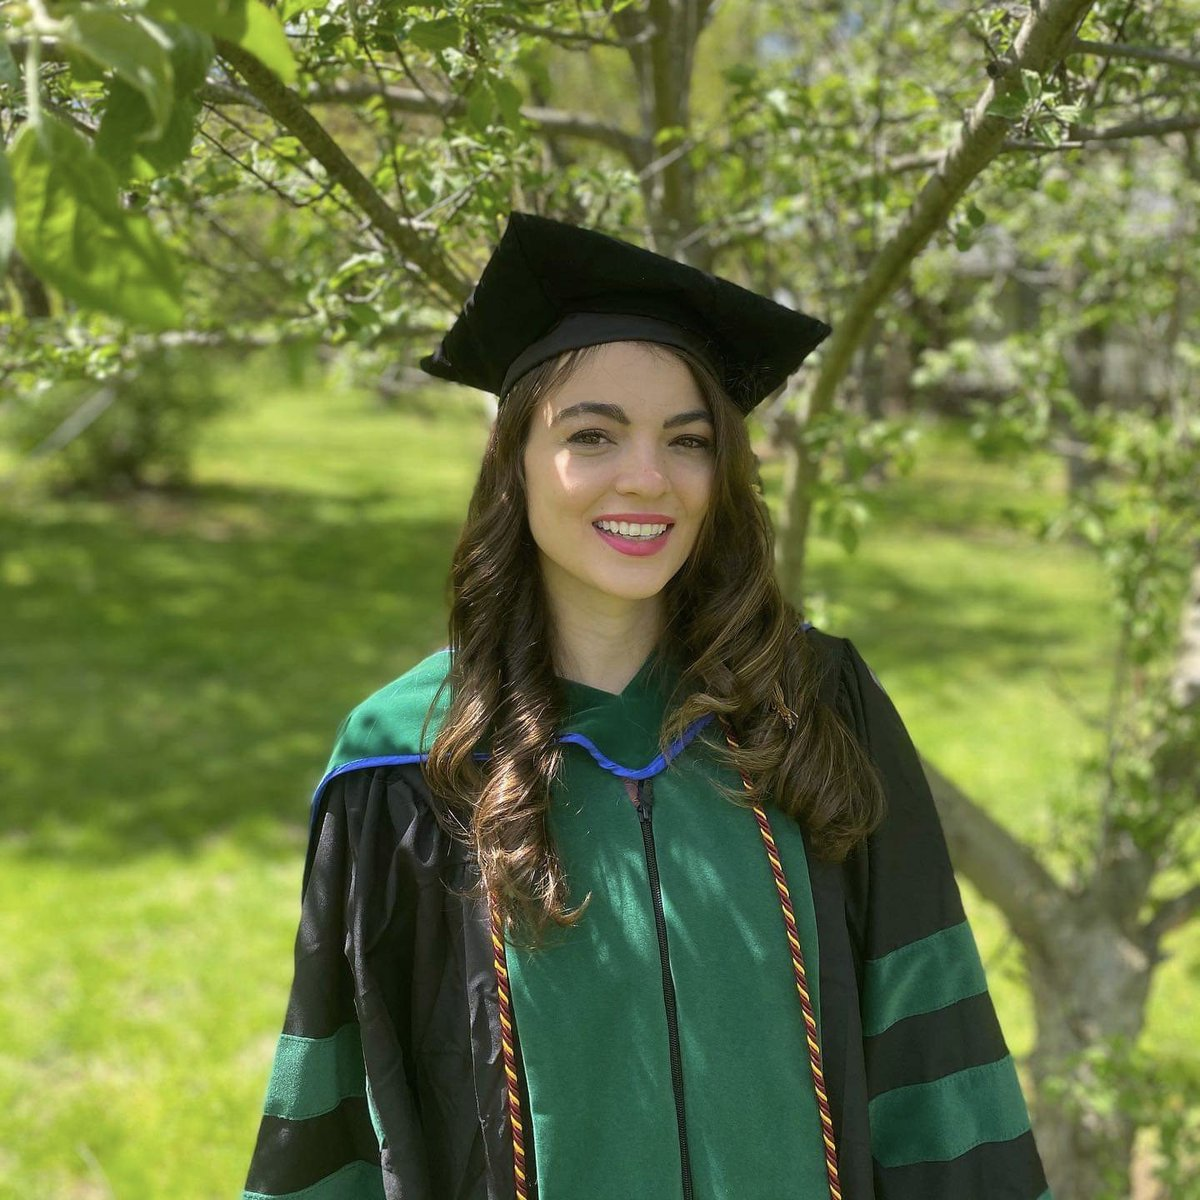 Mercy High School On Twitter On May 16 2020 Dr Genna Marcin 2012 Alumna And Valedictorian Graduated From The University Of New England College Of Osteopathic Medicine In Biddeford Maine She Earned